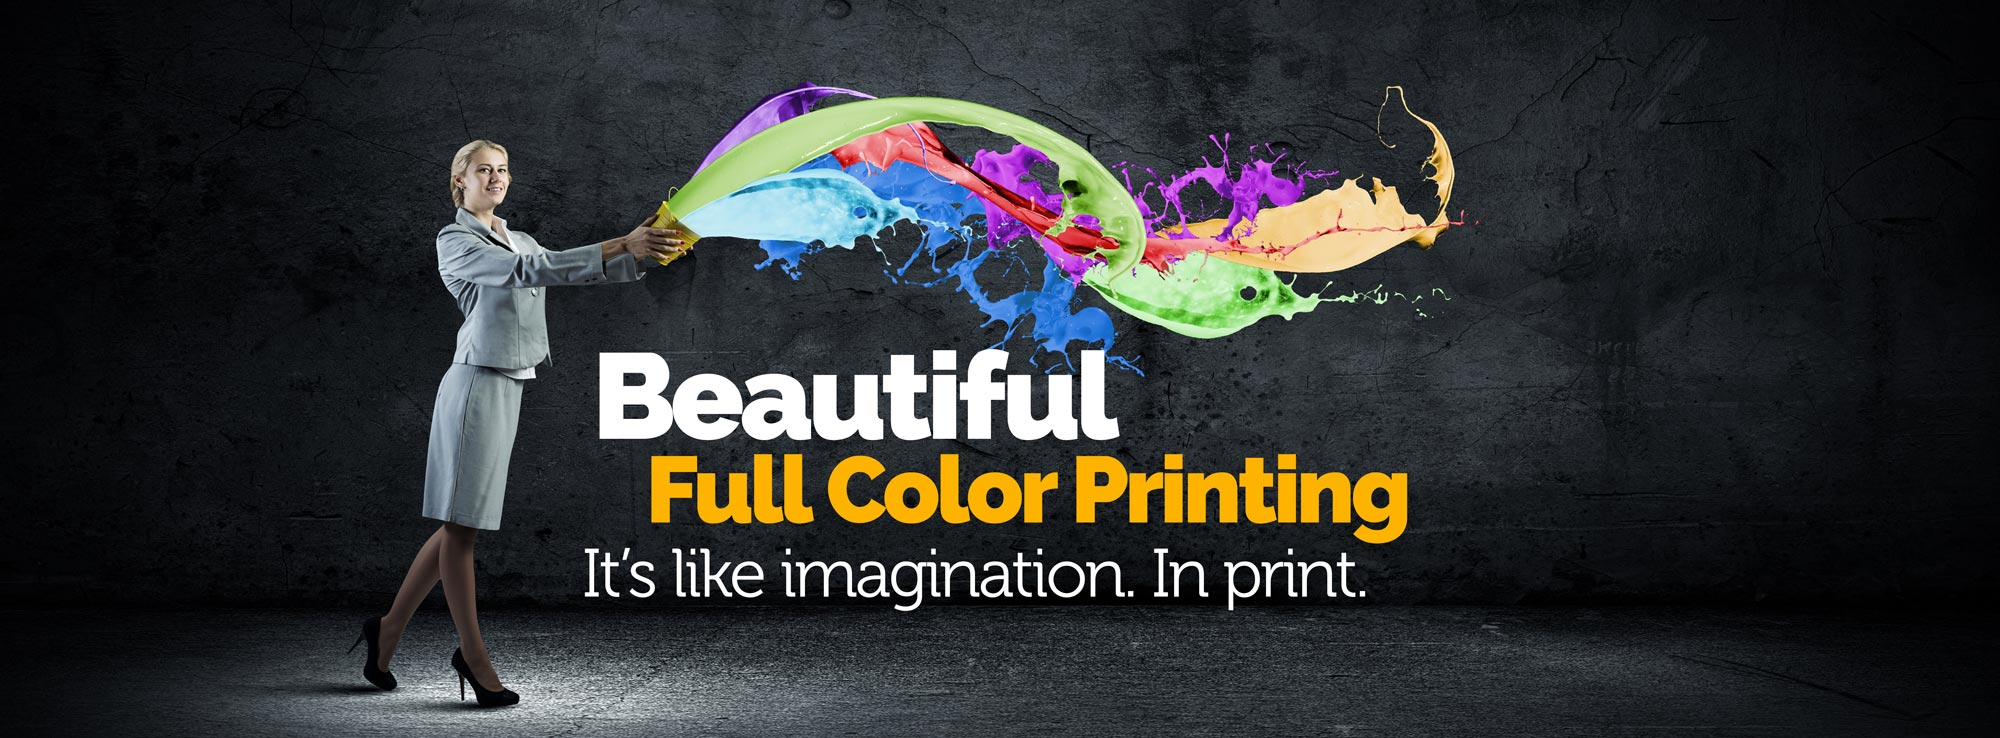 Stunning Powerful Printed Pieces That Actually Provide ROI